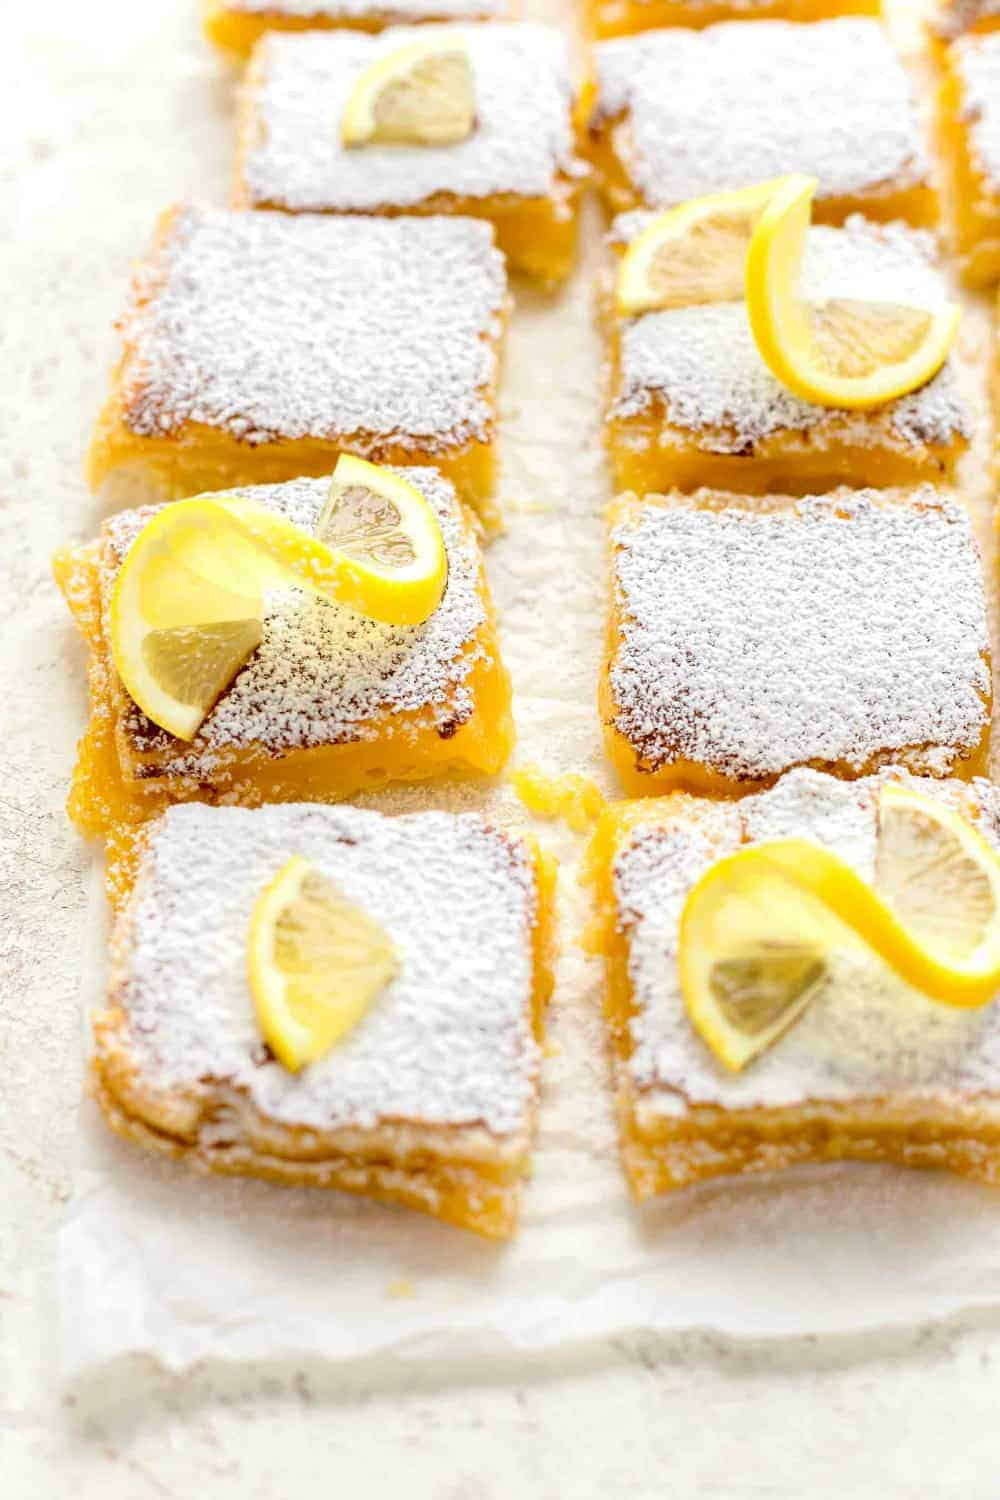 Overhead view of homemade lemon bars, sliced and topped with powdered sugar and lemon slices